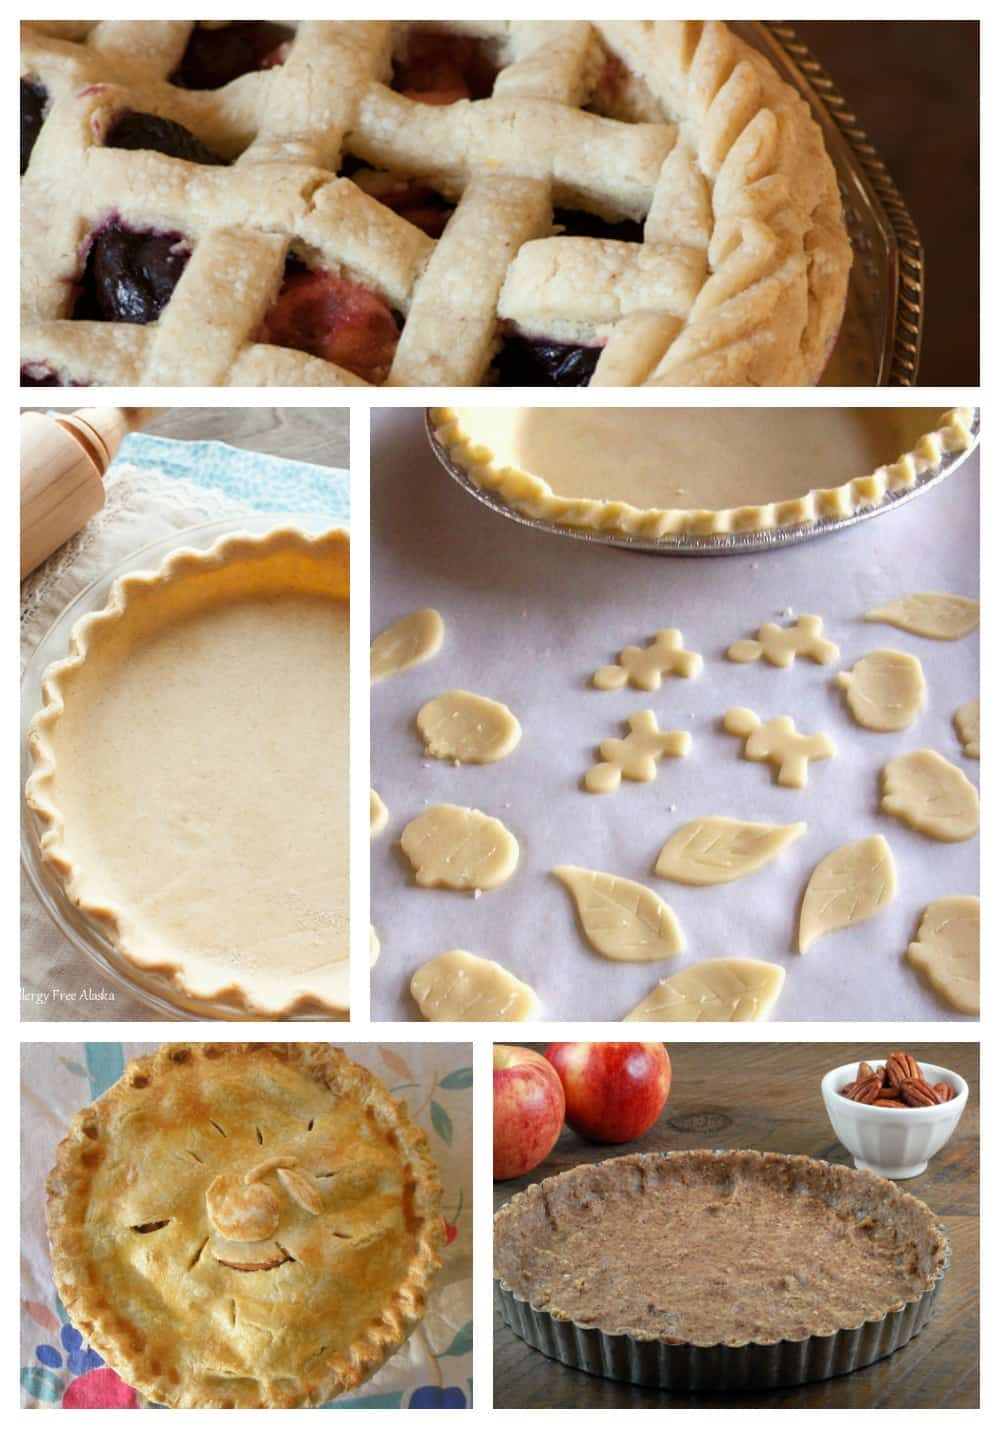 PIE!!!! Here are 40 of the best gluten-free pie crust recipes that will make your holidays and everyday--any time that a really good gluten-free pie is required! [featured on GlutenFreeEasily.com] (photo)